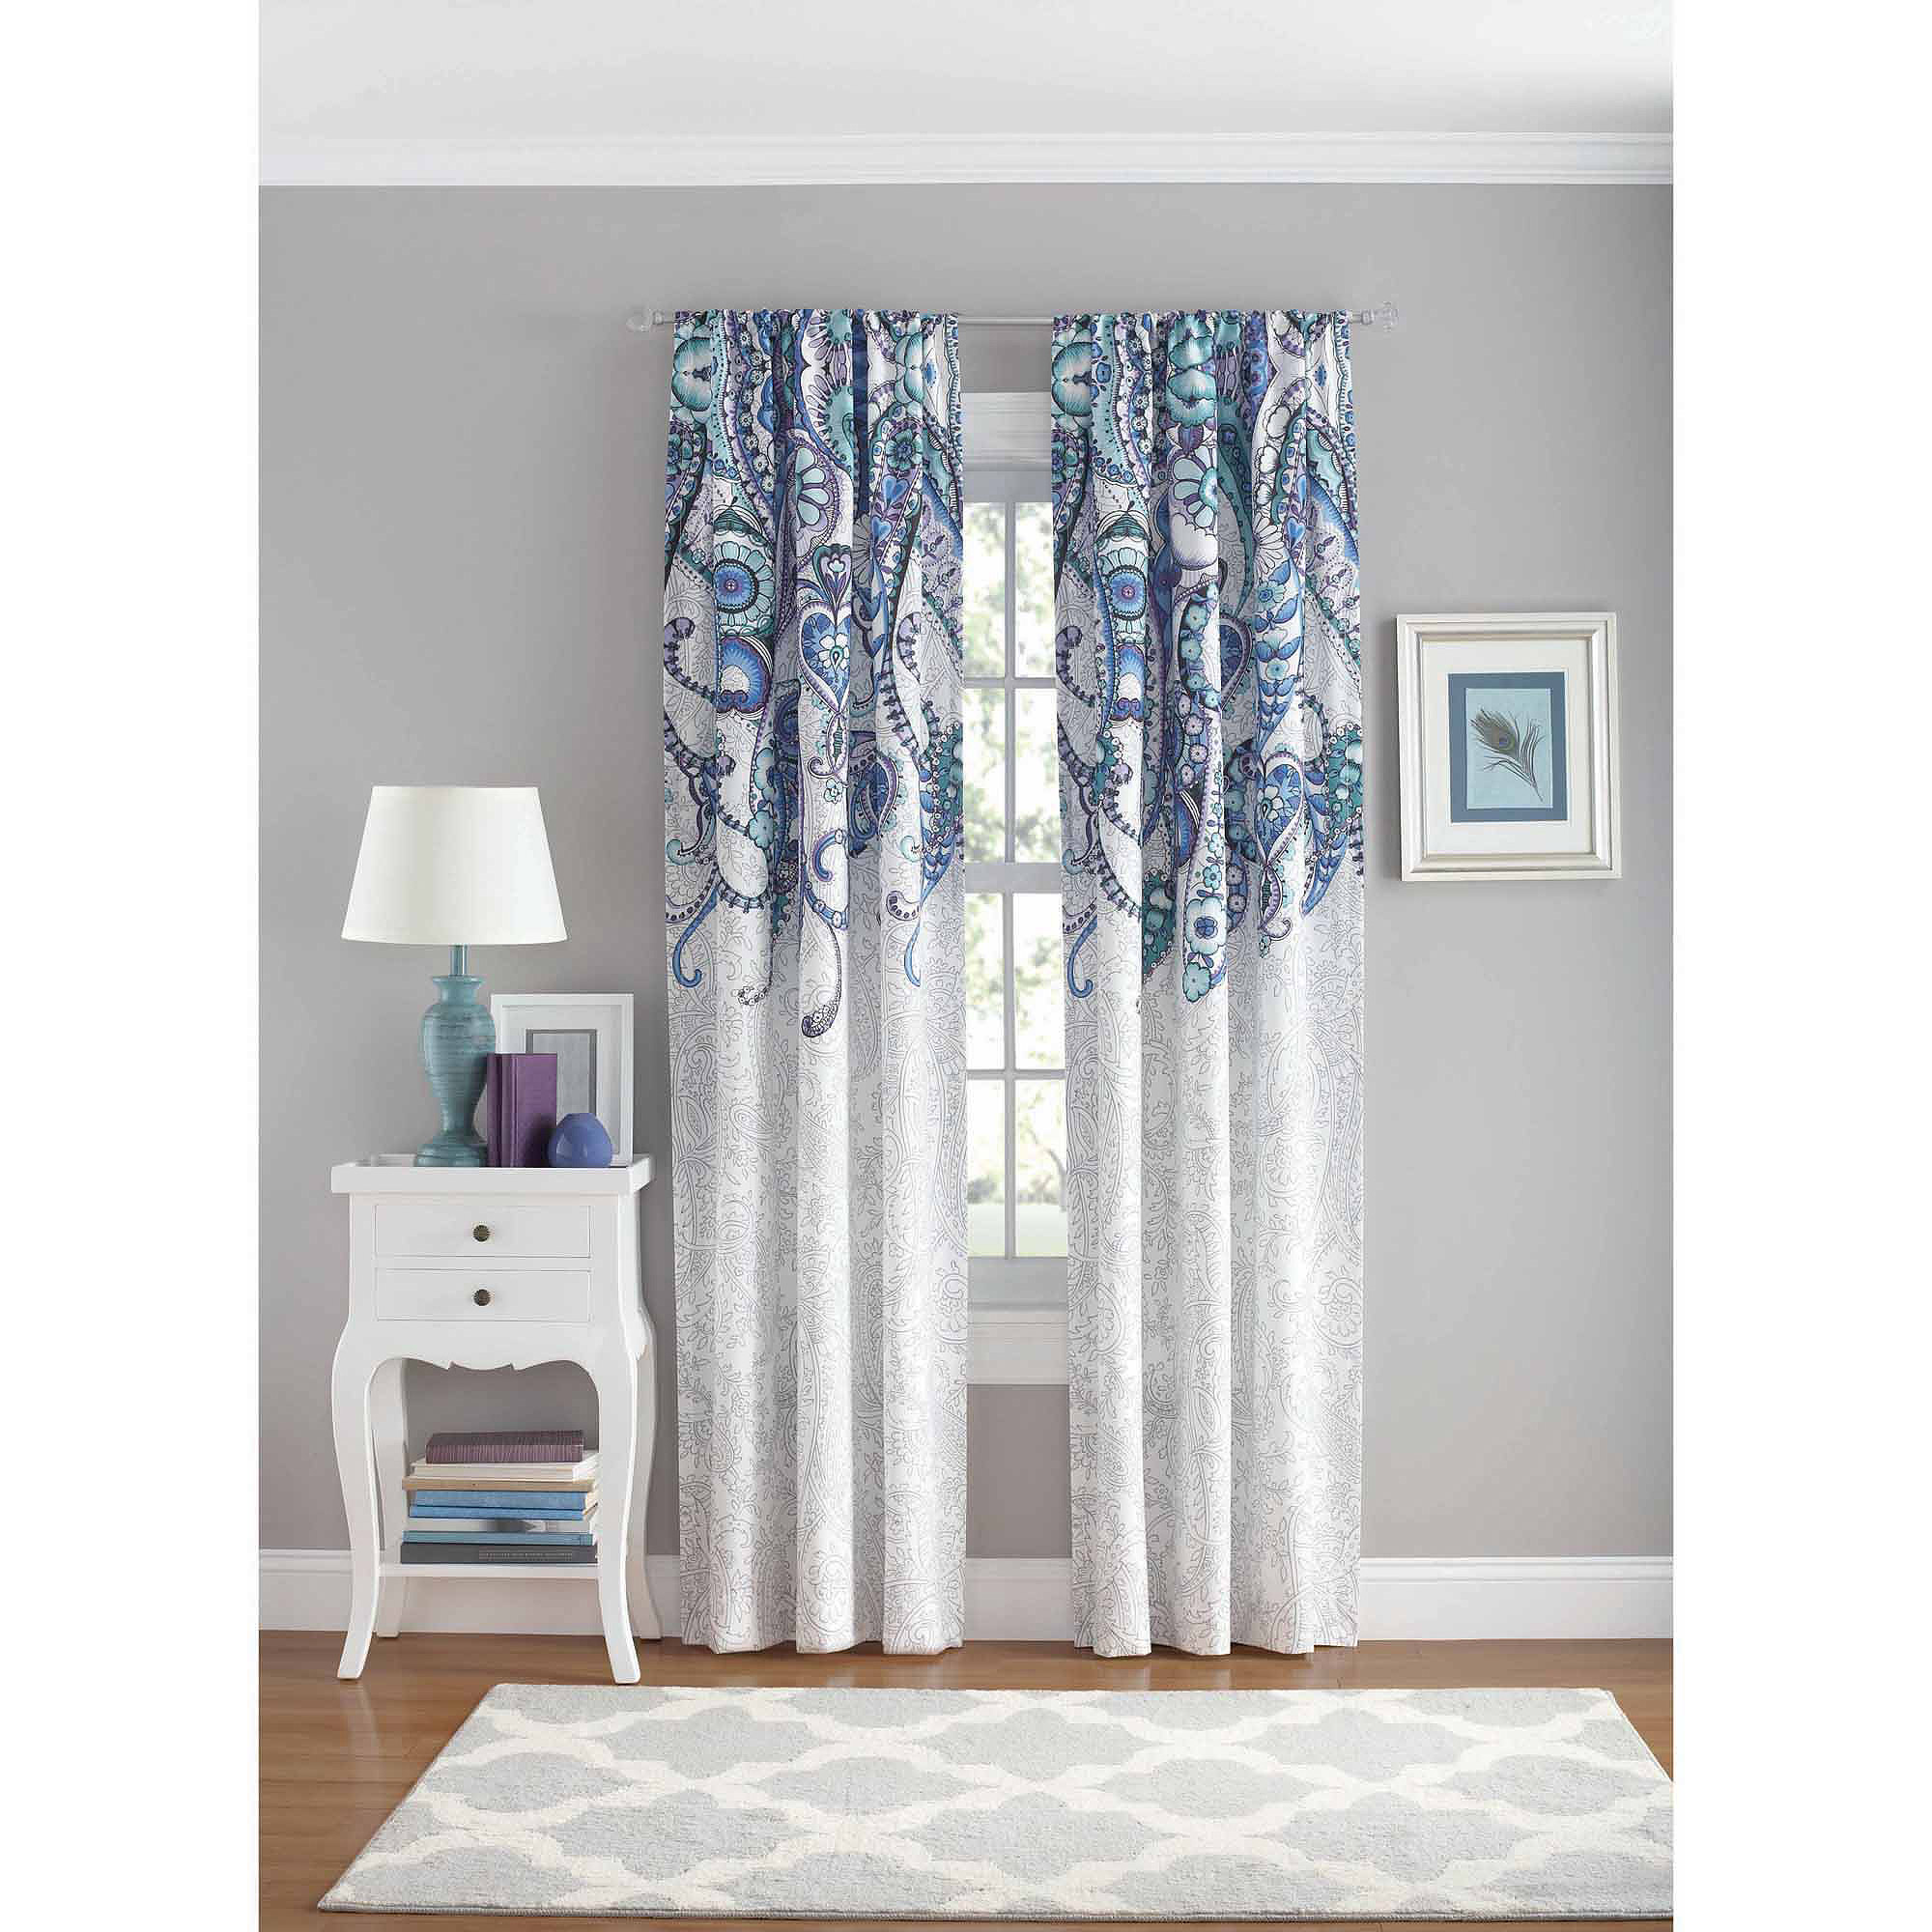 Your Zone Paisley Bedroom Curtain Panel